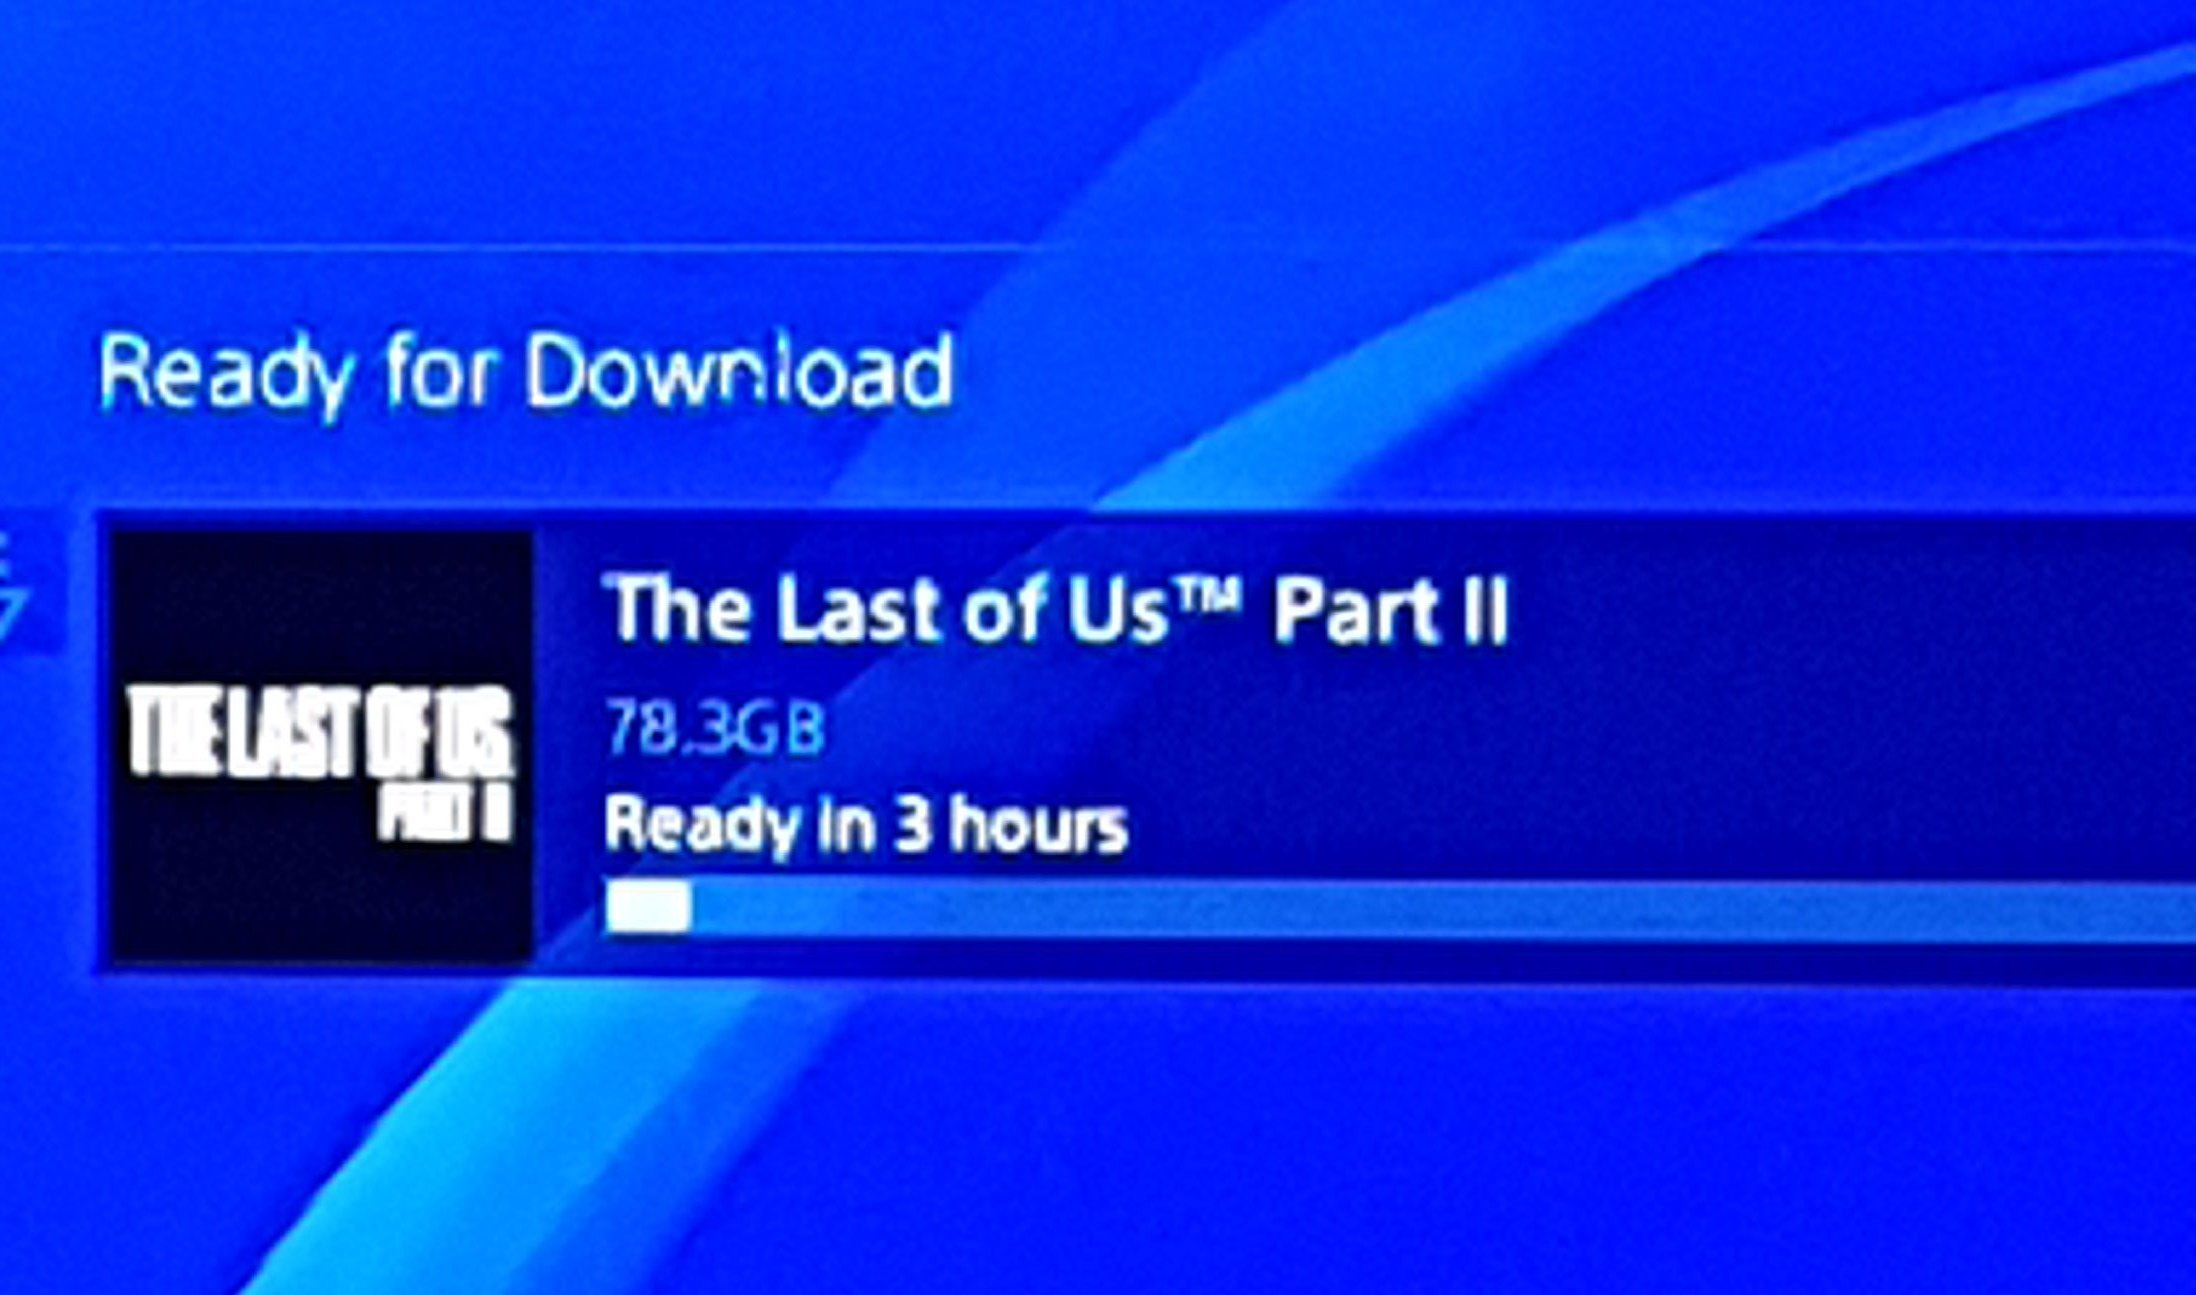 the last of us part 2 download size